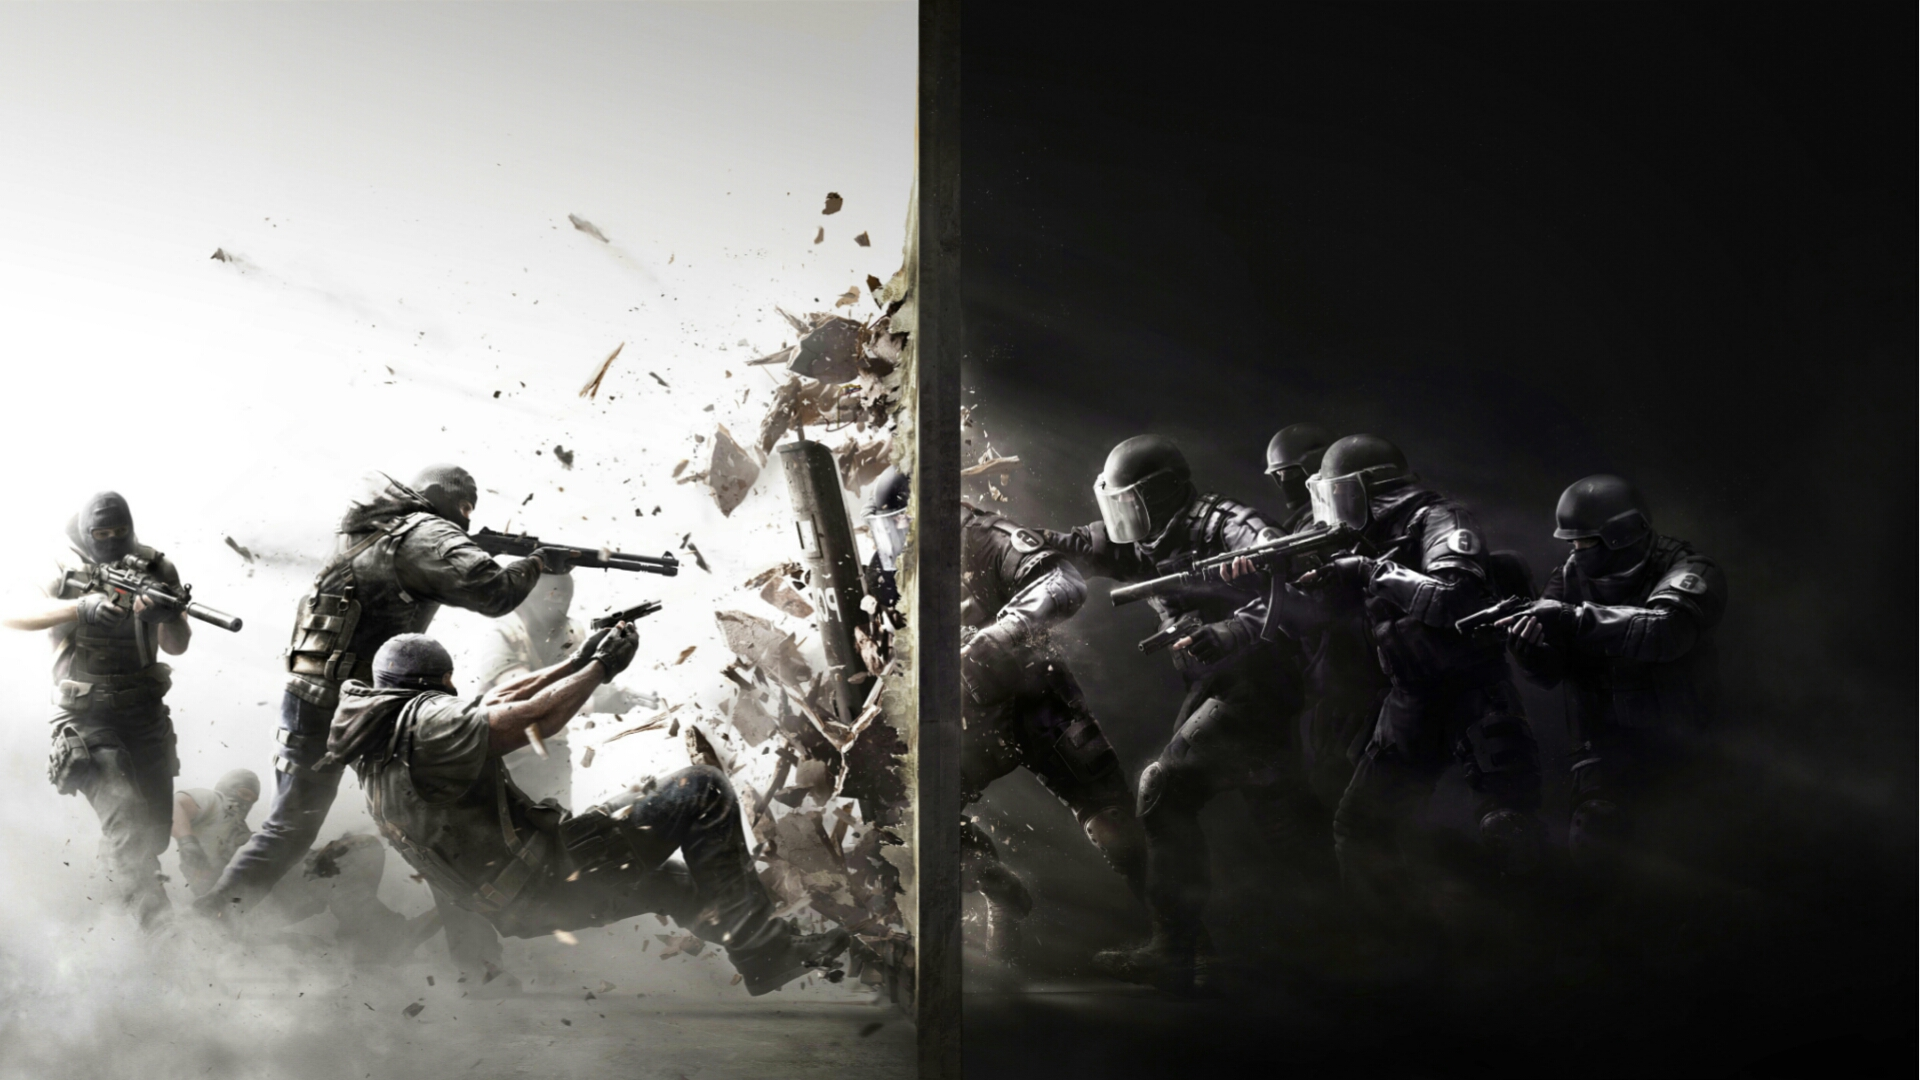 Rainbow Six Siege Hd Wallpapers Free Download